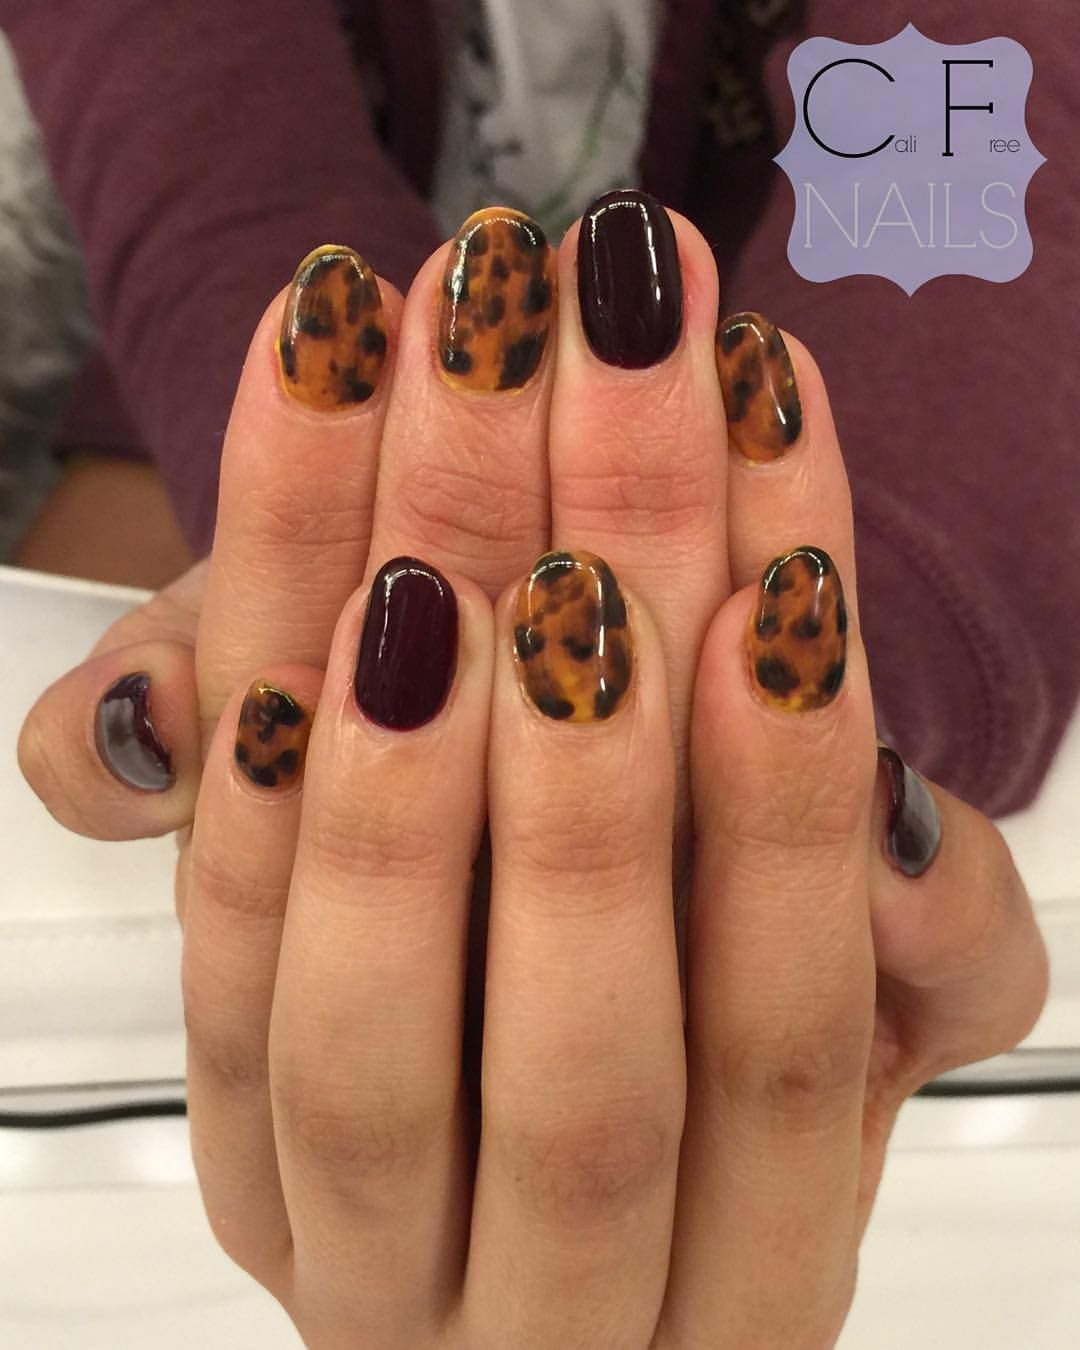 Tortoise Shell Nails For Kelseydeuel Love The Ideas She Comes With These Were Very Fun To Create Nailsoftheday Gelnails Nailswag Nailart